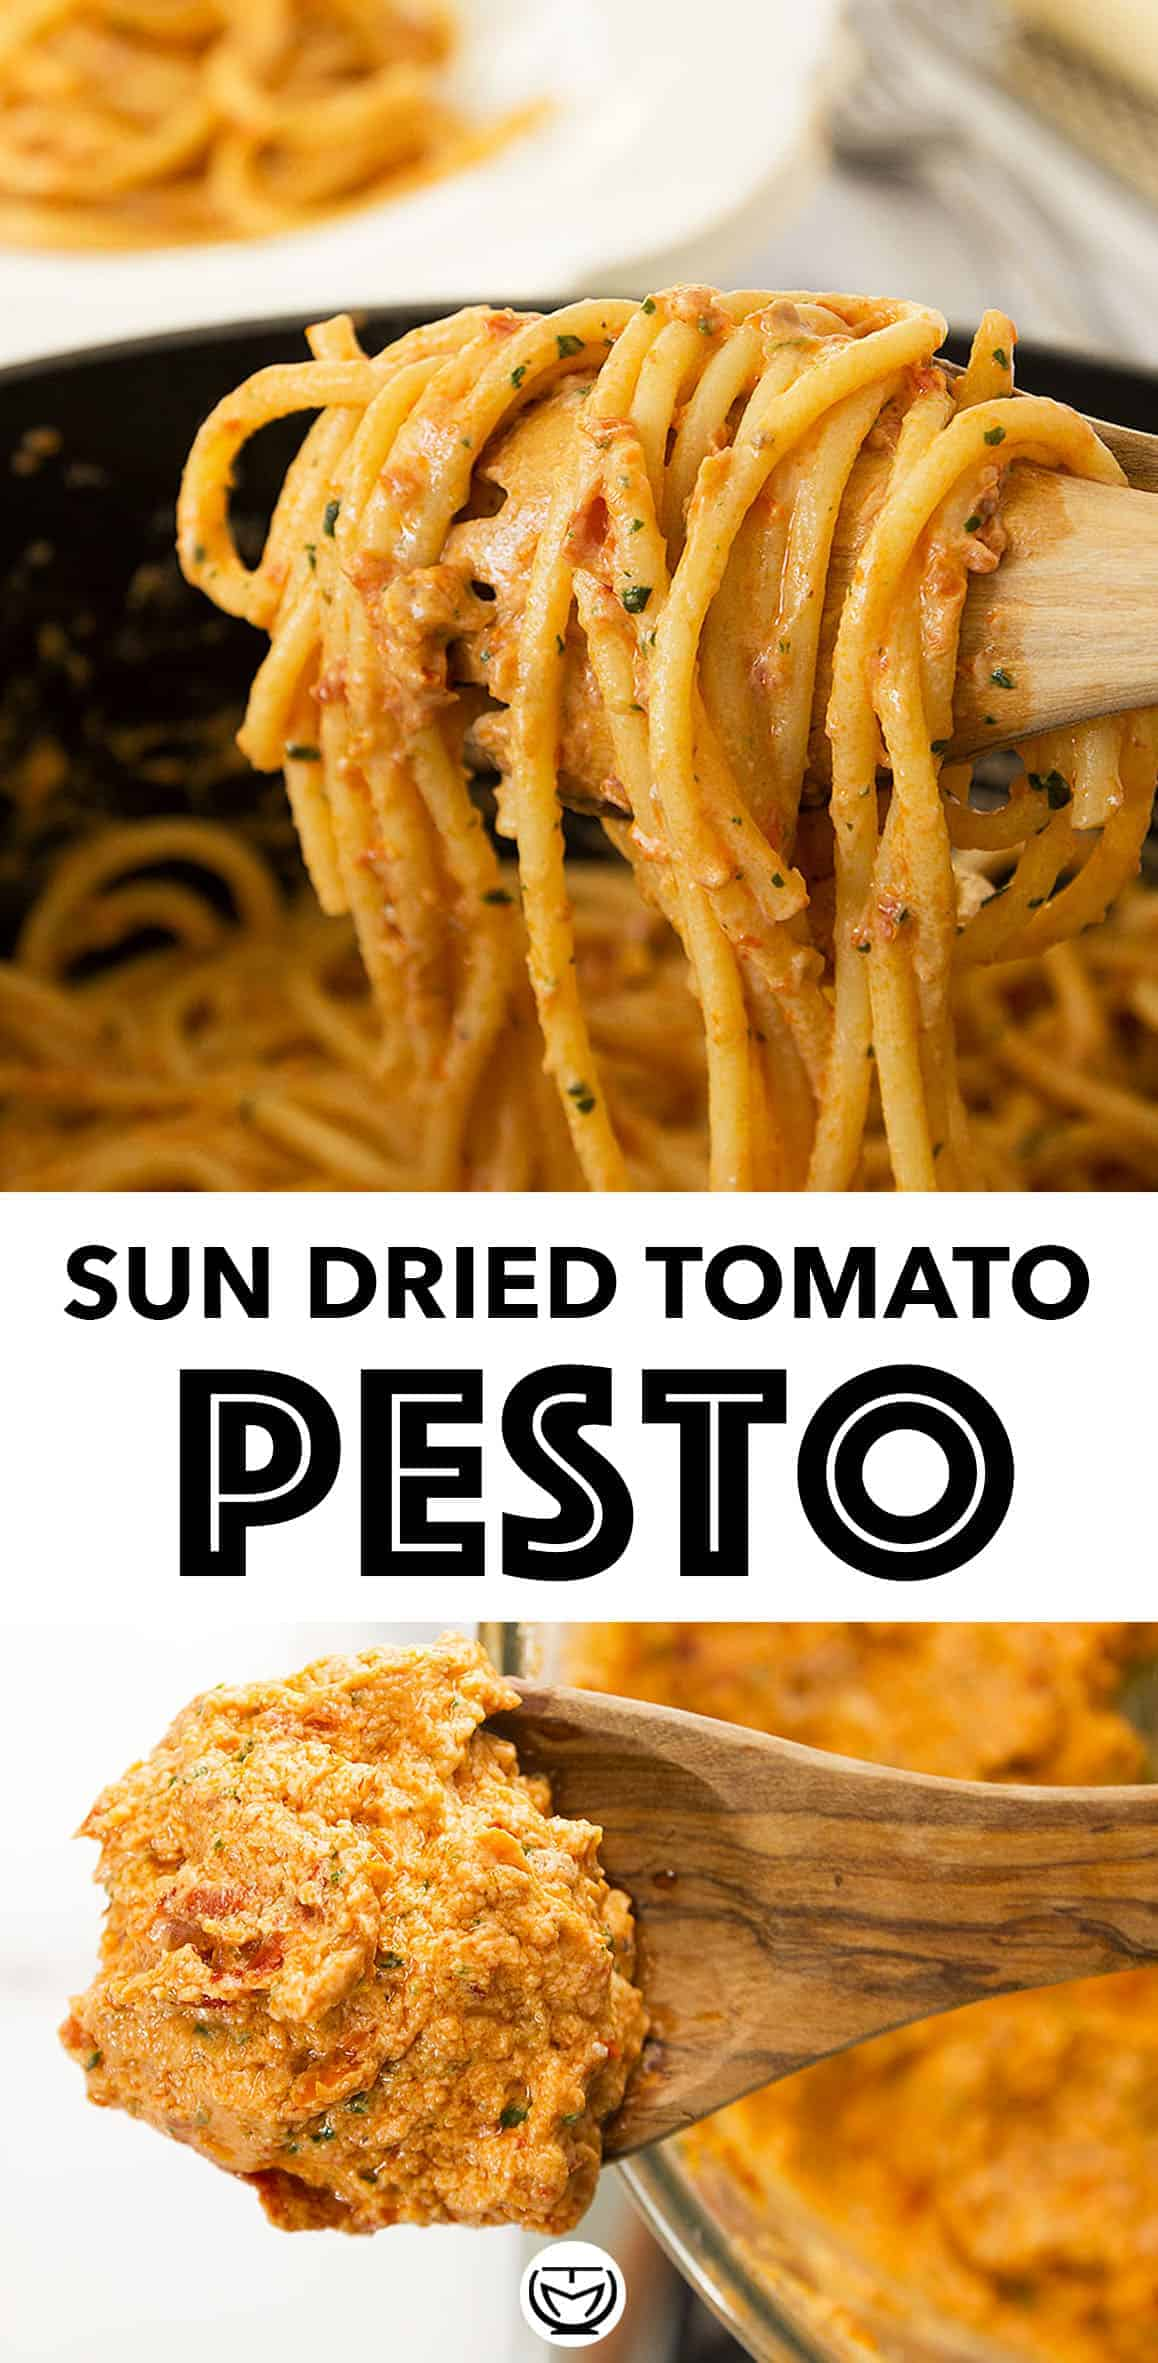 This scrumptious creamy sun dried tomato pesto will be fabulous with your pasta, it tastes and smells amazing and will boost your mood on busy nights. #pestorecipes #pestopasta #sundriedtomatopasta #vegetarianrecipes #pastarecipes